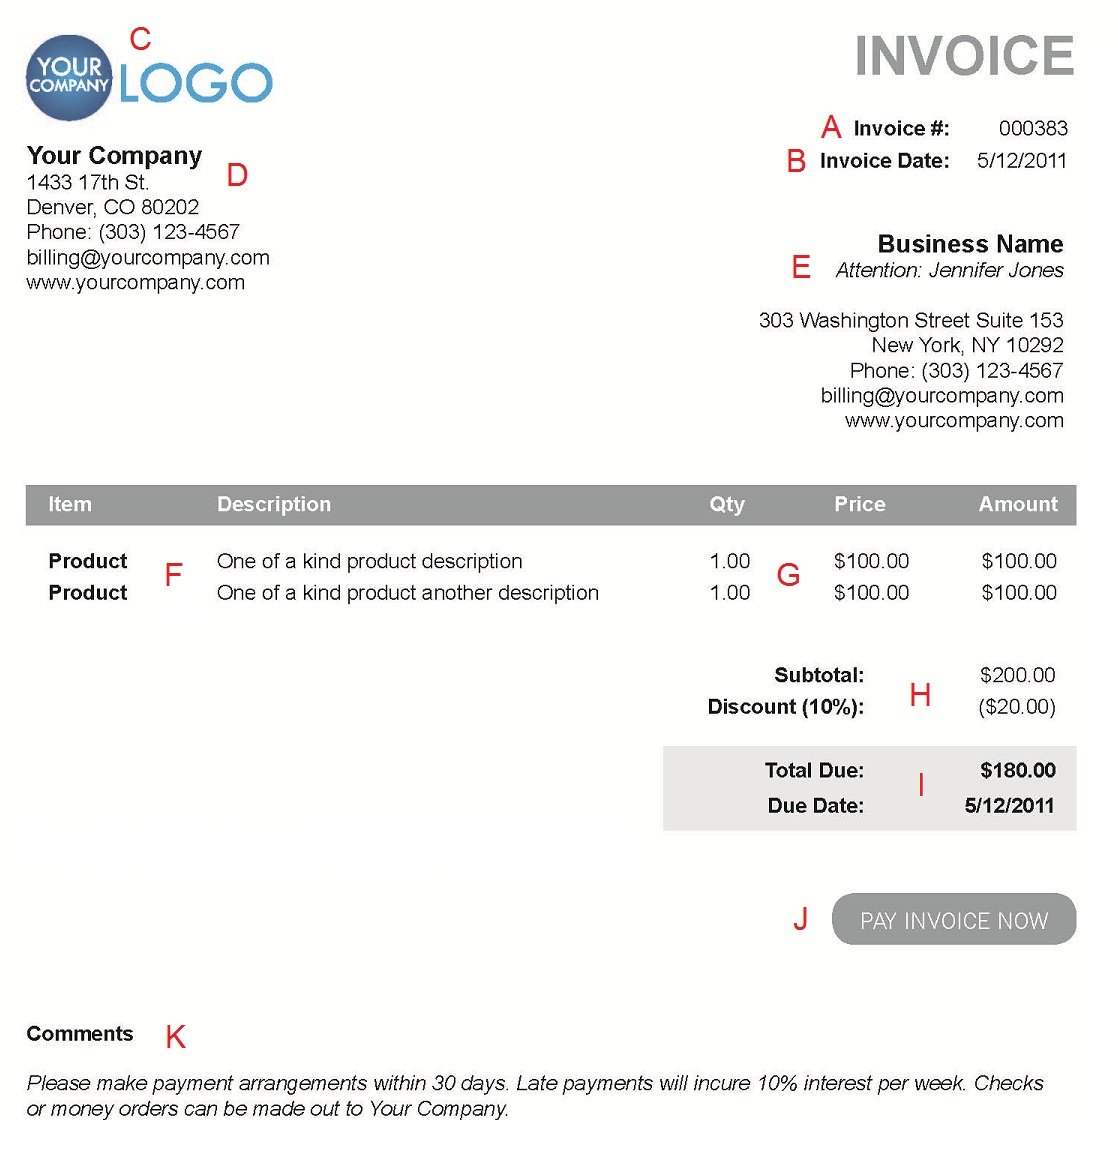 Reliefworkersus  Remarkable The  Different Sections Of An Electronic Payment Invoice With Engaging A  With Nice Nice Invoice Template Also Overdue Invoice Reminder In Addition  Hyundai Sonata Invoice Price And Invoices And Statements As Well As Invoice Letters Additionally Limited Company Invoice From Paysimplecom With Reliefworkersus  Engaging The  Different Sections Of An Electronic Payment Invoice With Nice A  And Remarkable Nice Invoice Template Also Overdue Invoice Reminder In Addition  Hyundai Sonata Invoice Price From Paysimplecom